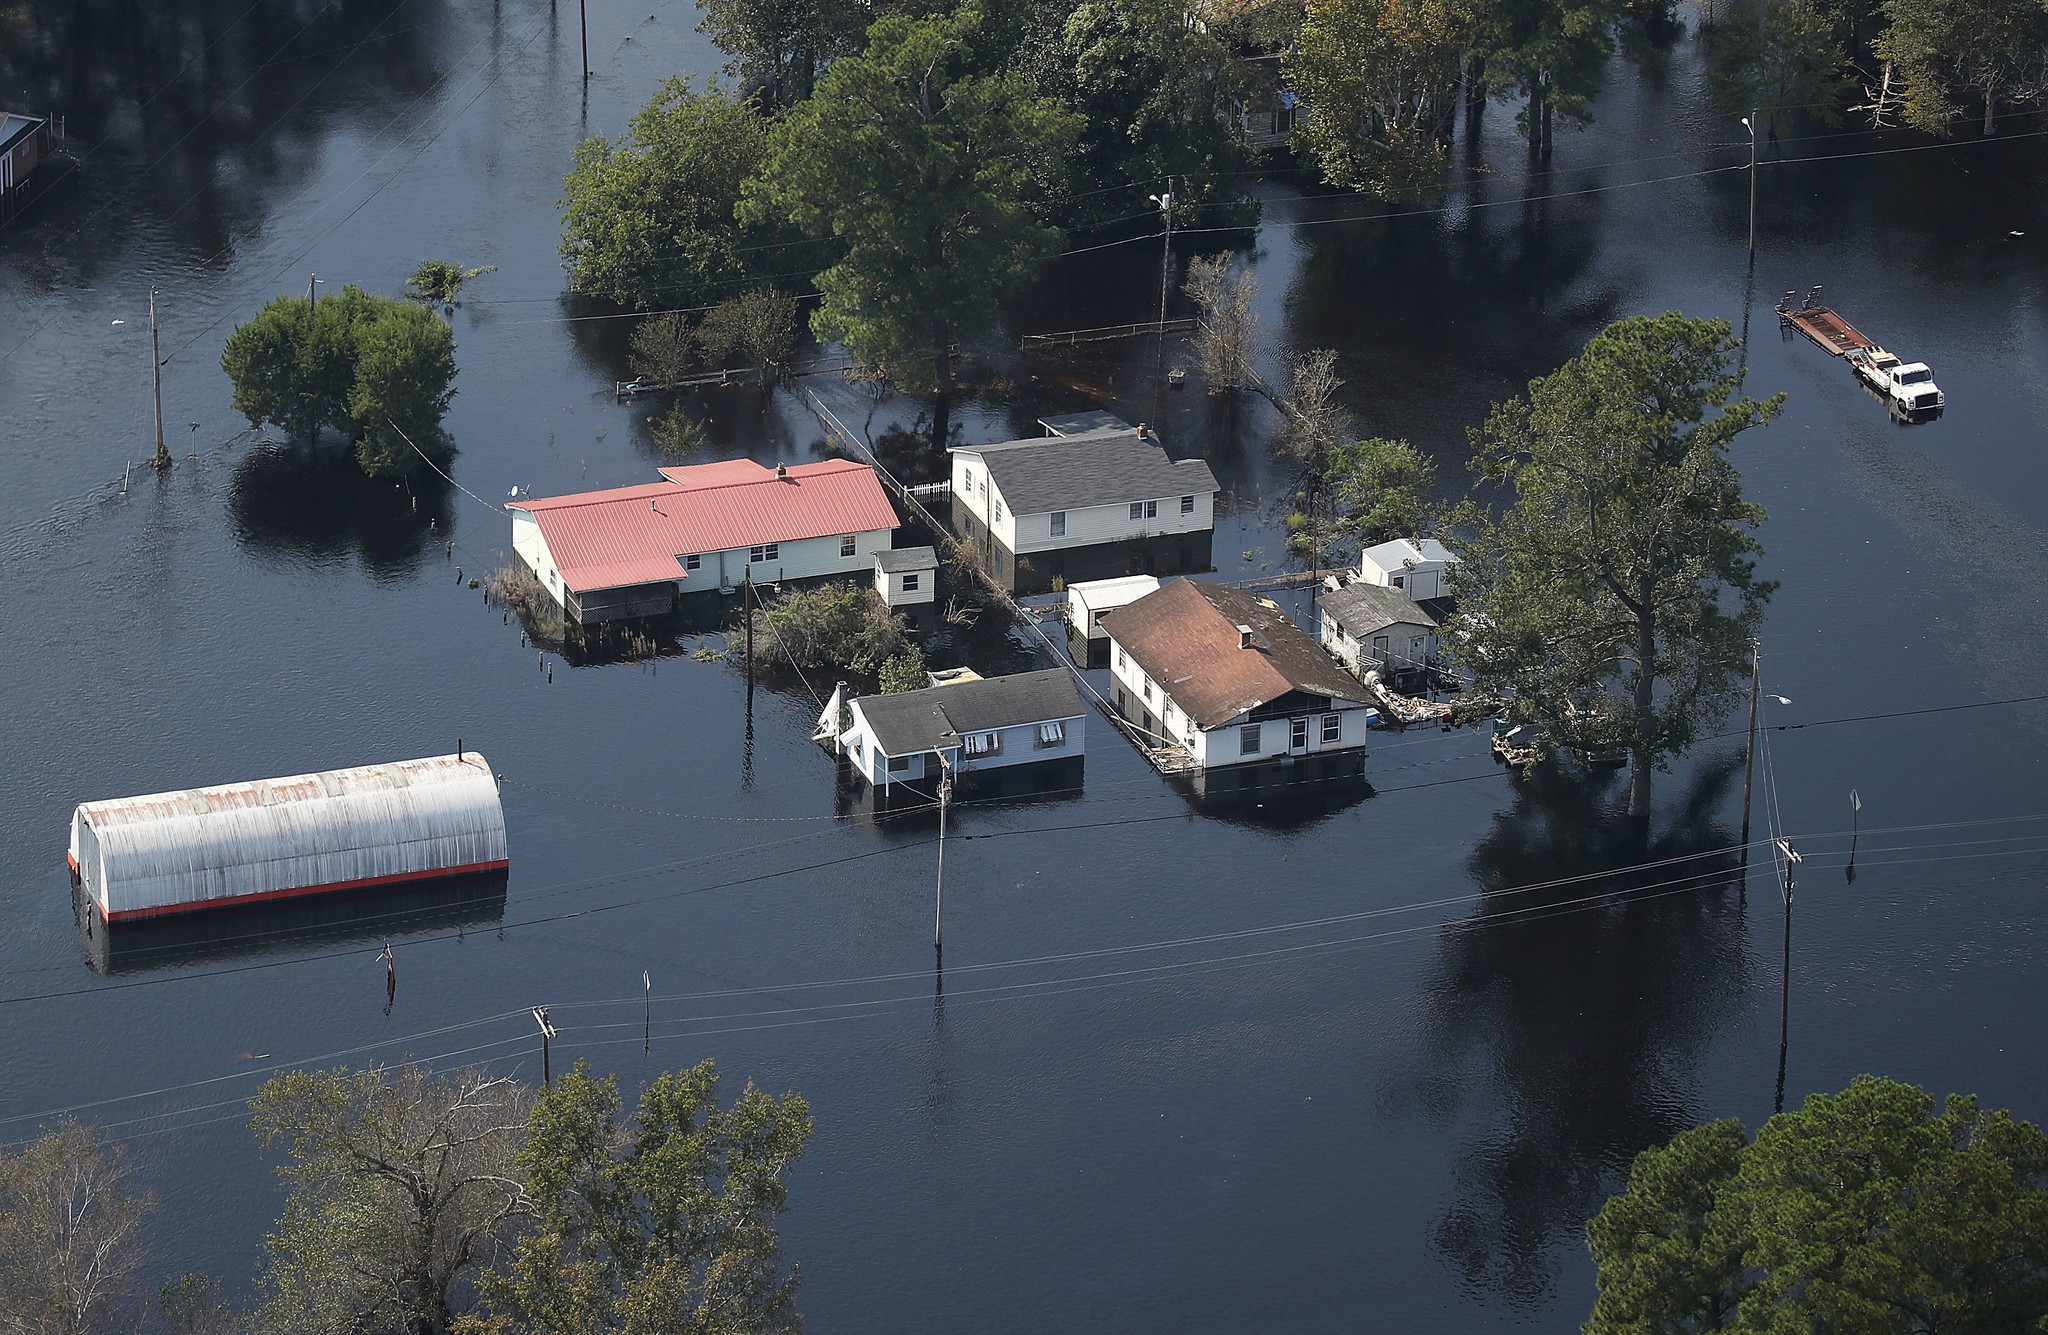 U.S. Military Surveys Flood Damage After Hurricane Florence